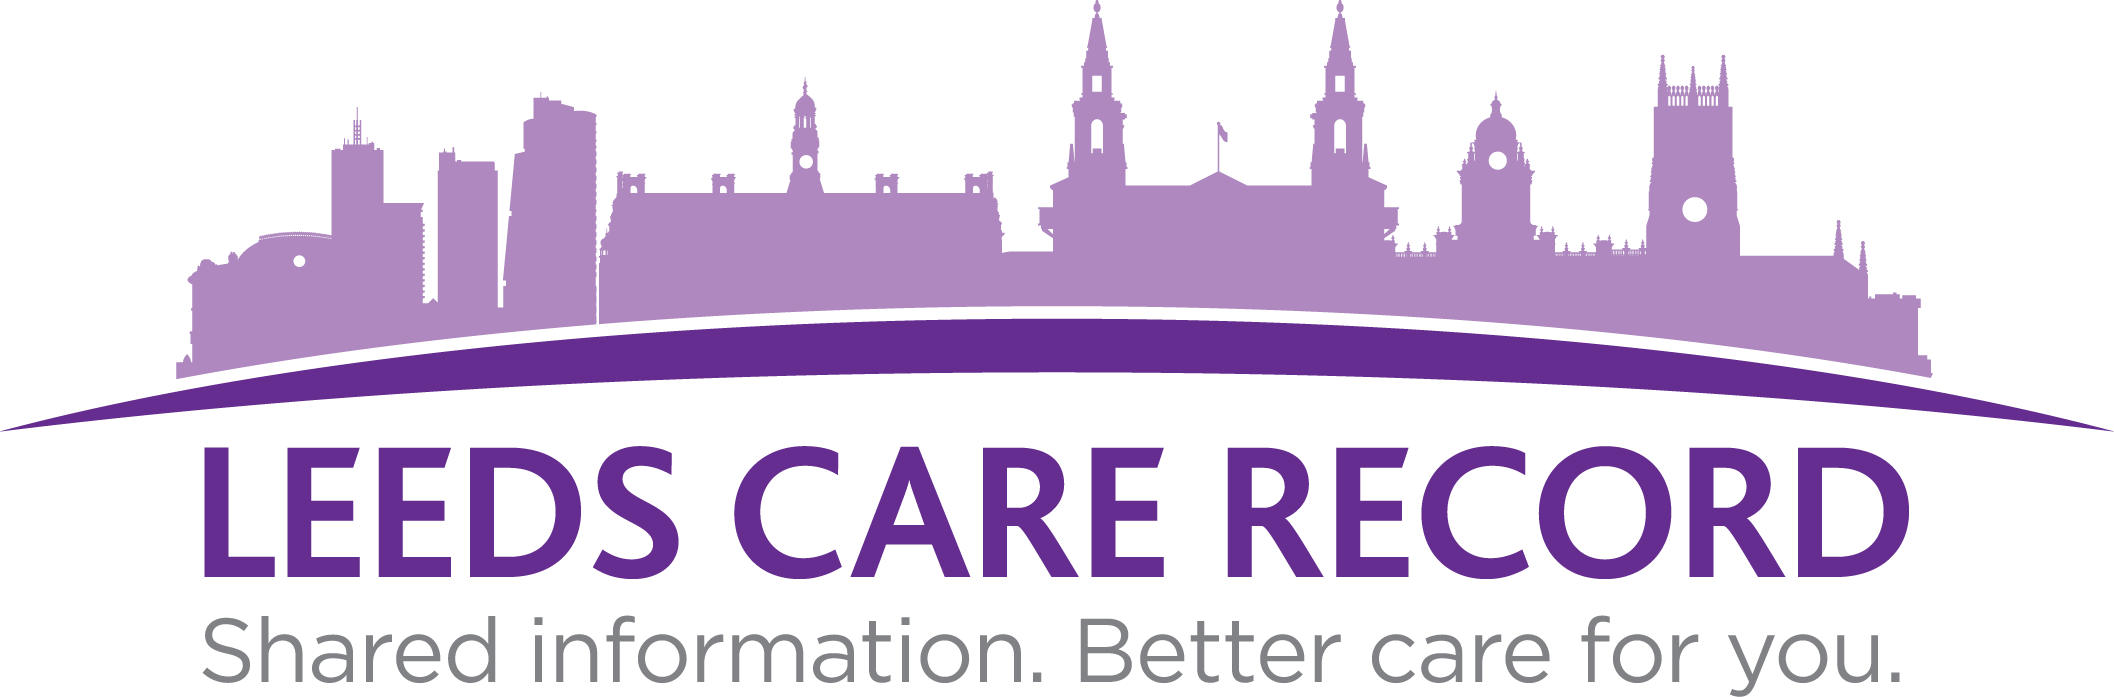 Leeds Care Record Shared Information Better Care For You